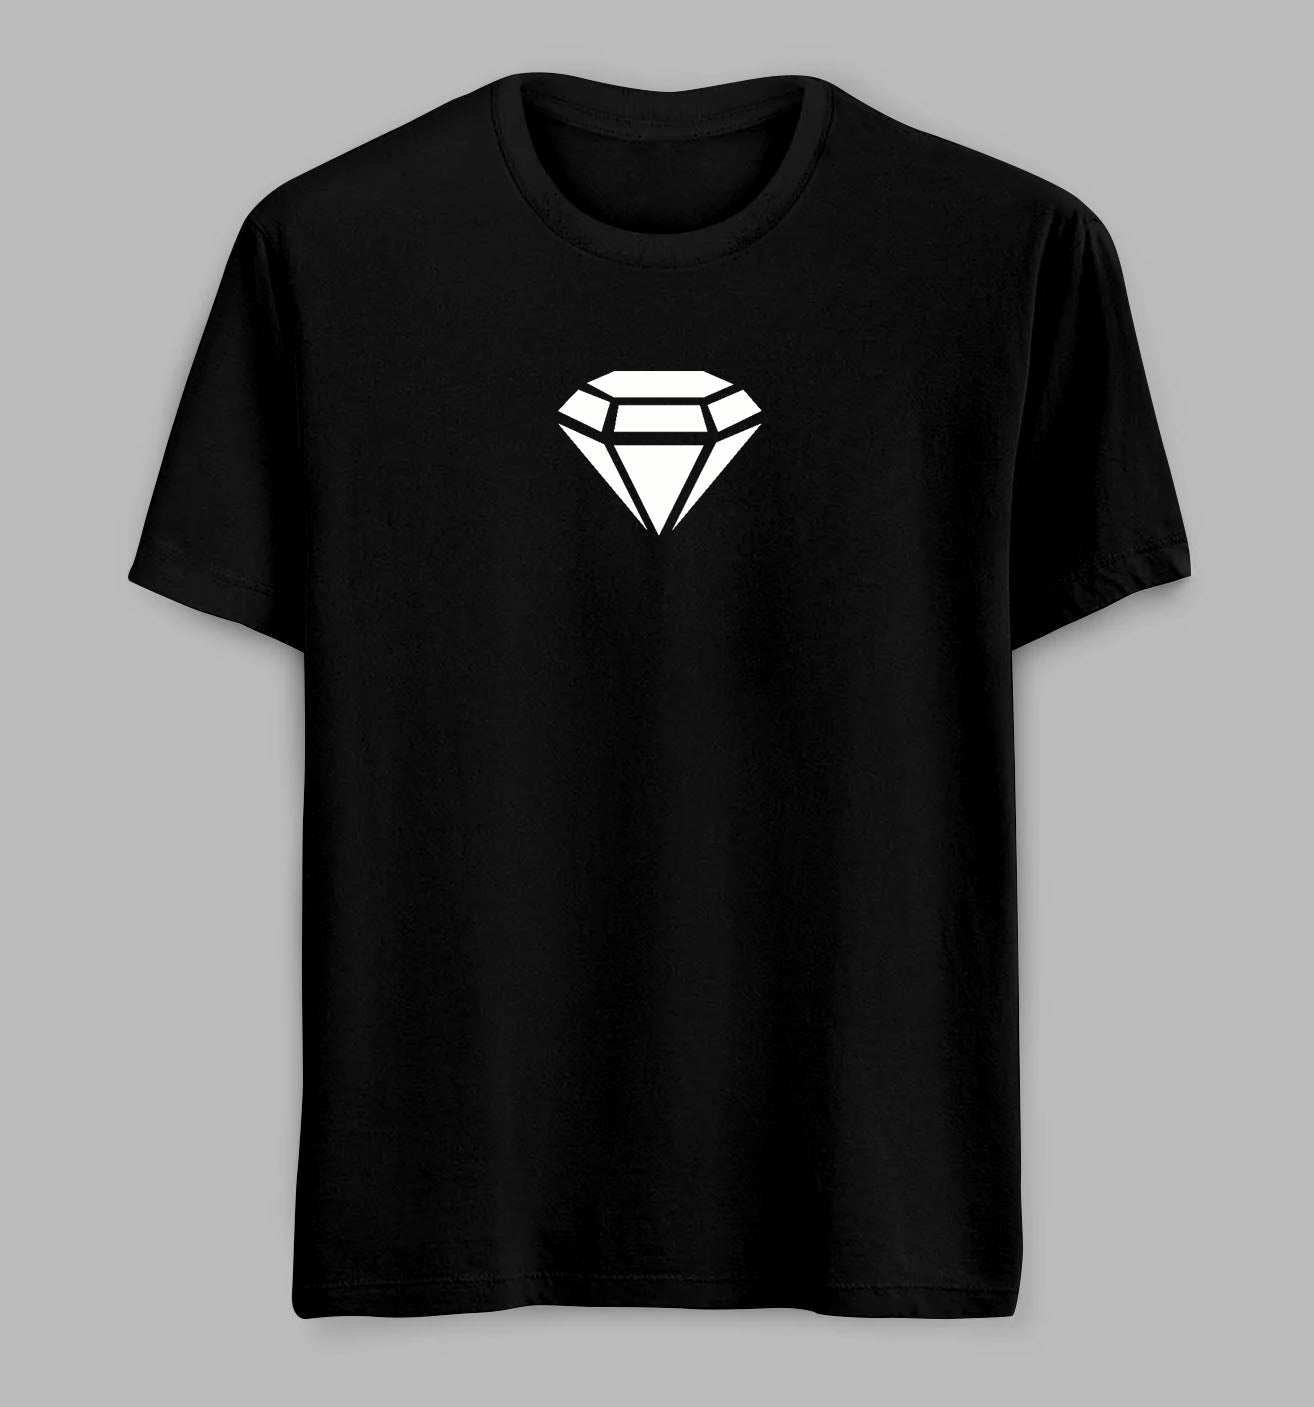 Diamond Tees / TShirts